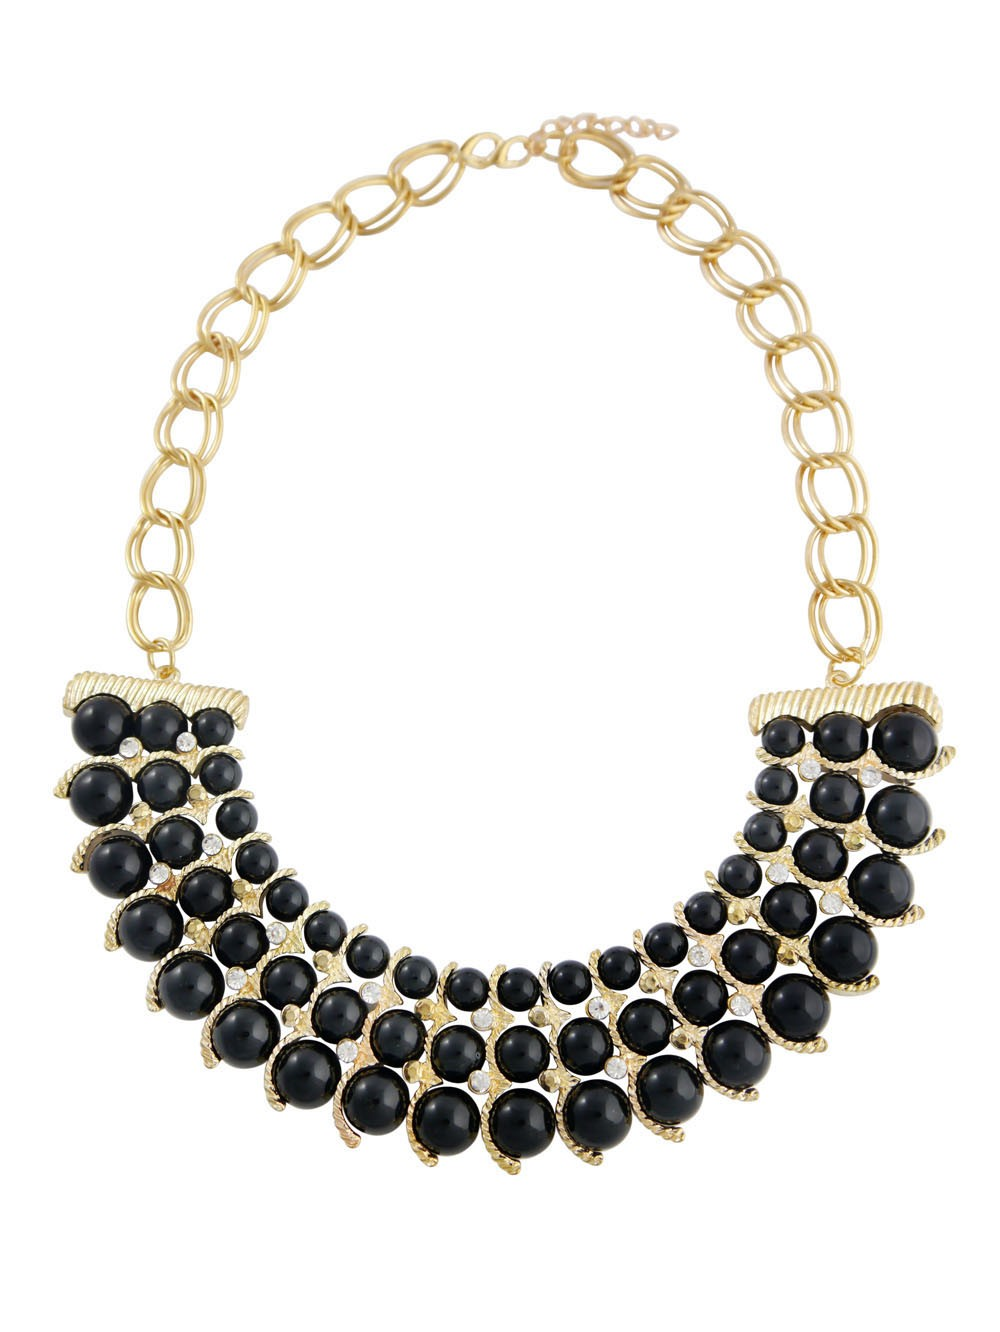 Three Row Black Bead Necklace